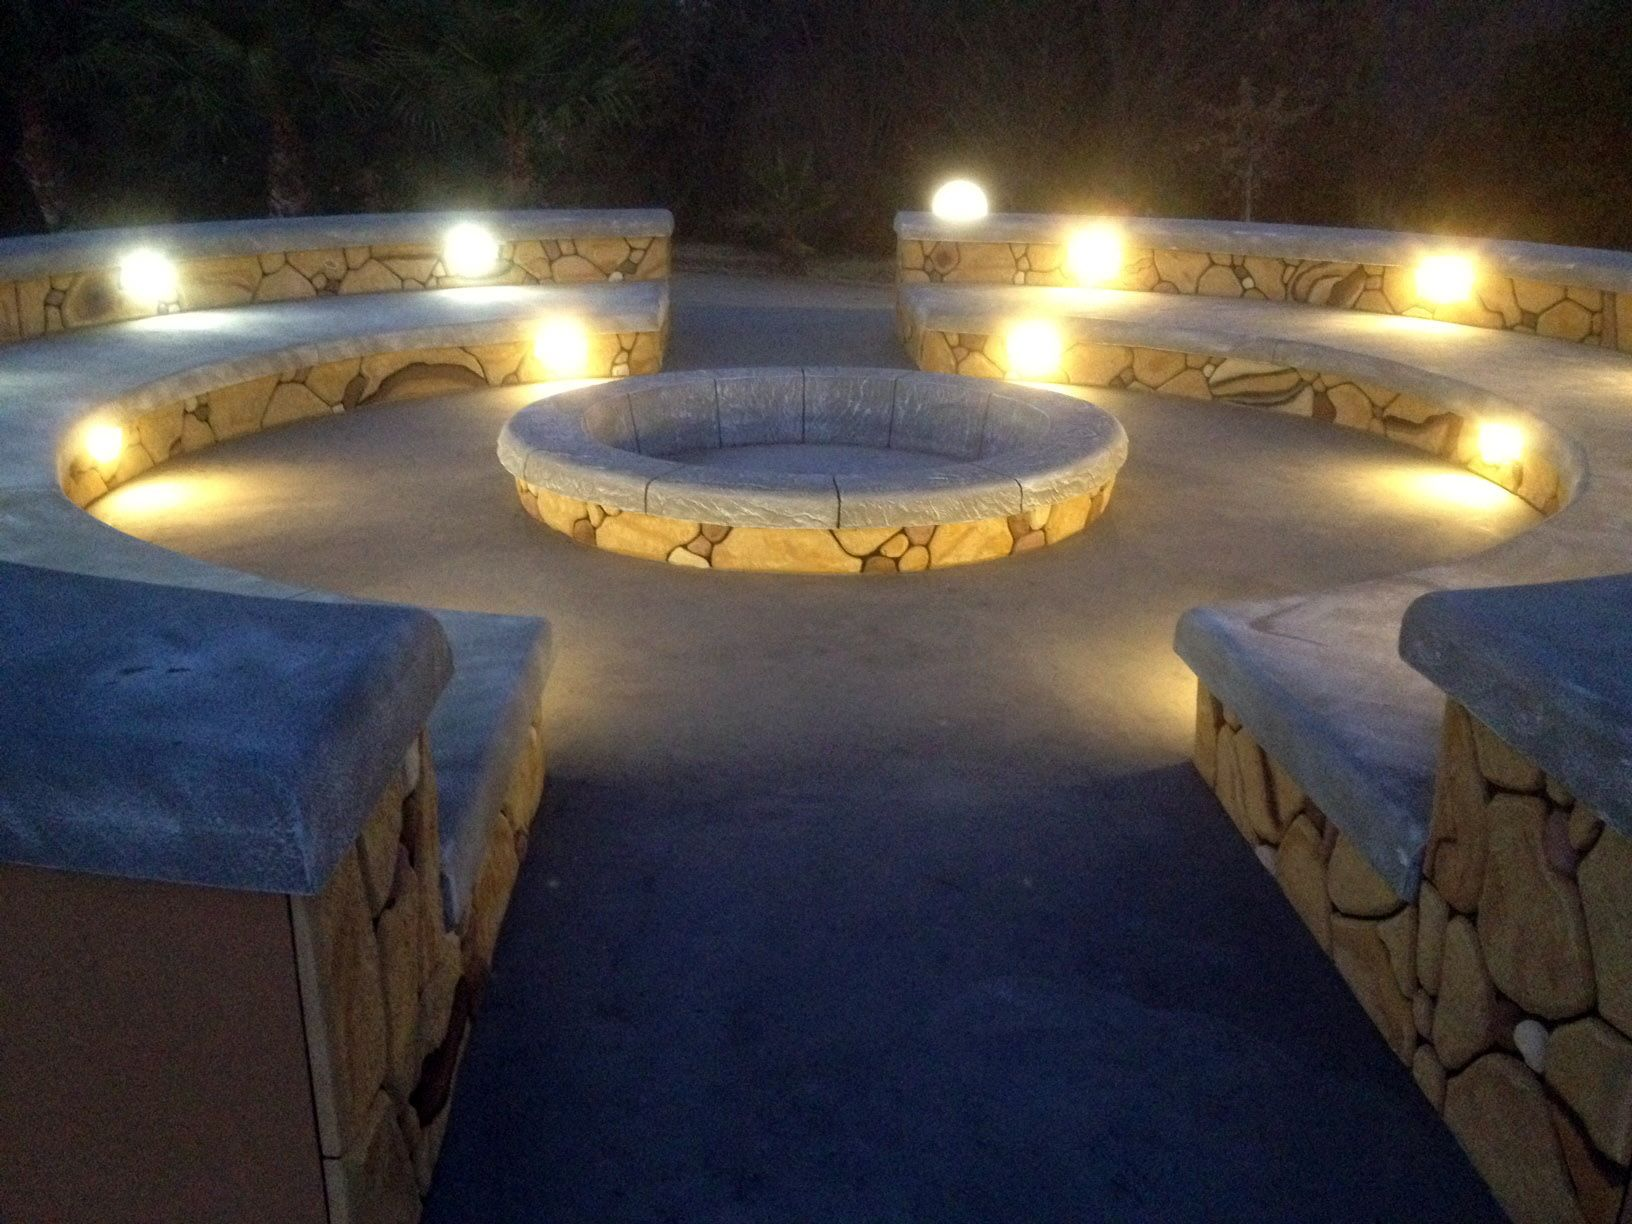 boma at night, perfect for bone fires, braais, potjie ... on Modern Boma Ideas id=84601